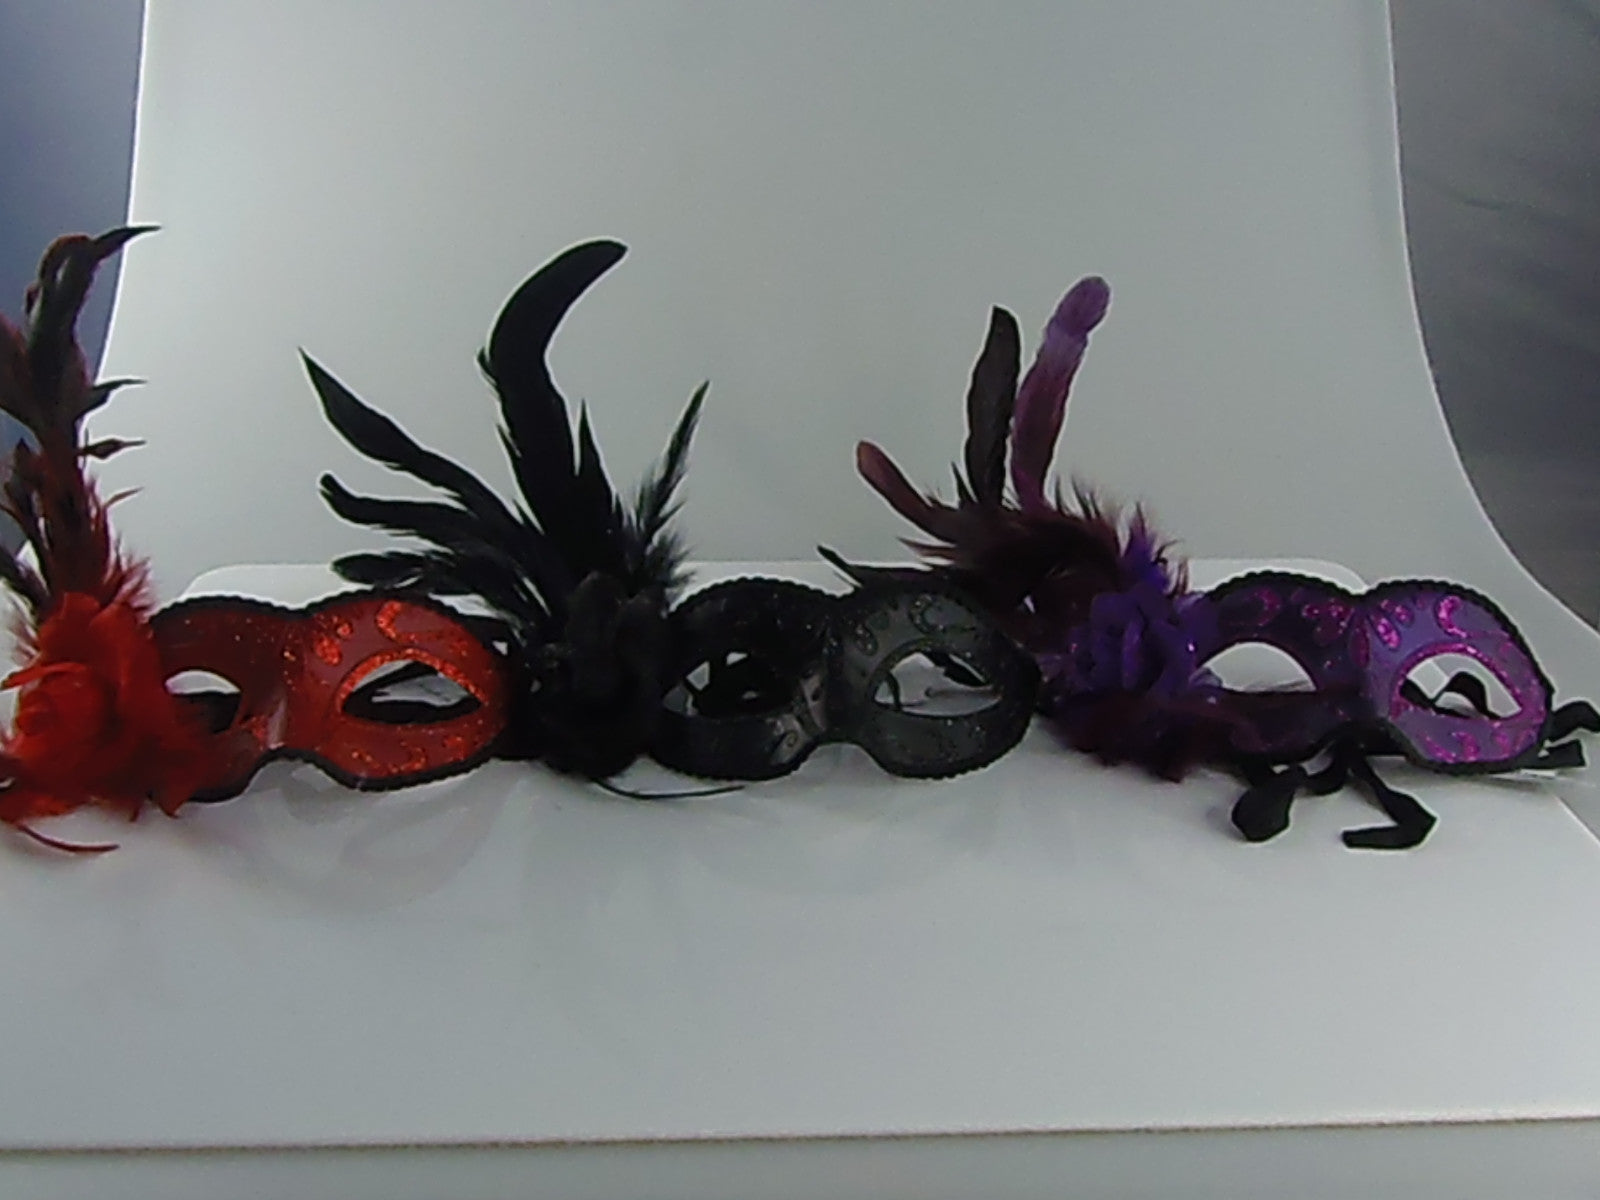 MK141 - Set of 3 Assorted Masks with Feathers -  CLEARANCE 50% OFF LISTED PRICE SOLD AS SETS